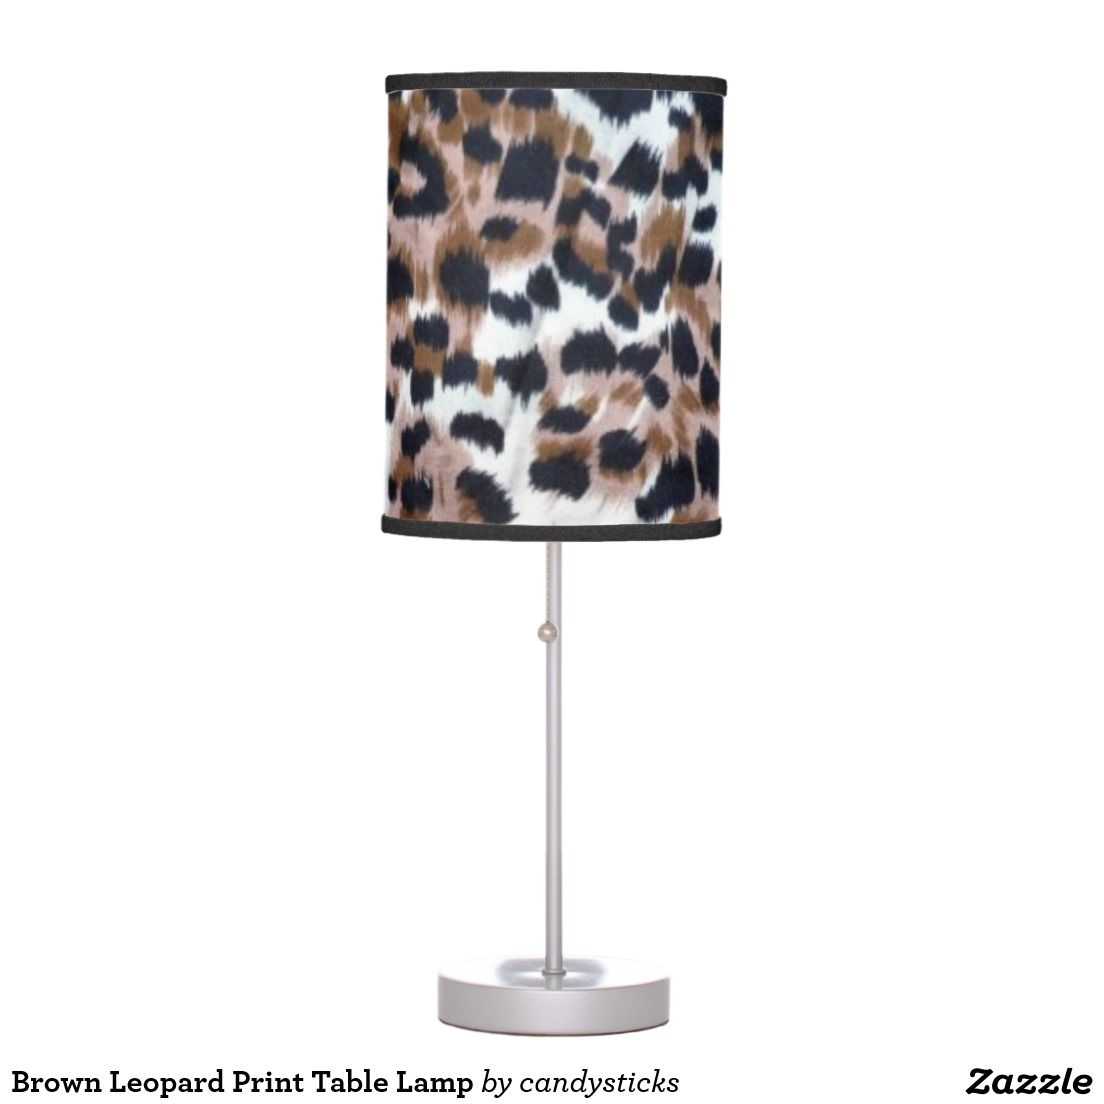 Brown leopard print table lamp leopard prints brown leopard and brown leopard print table lamp geotapseo Gallery